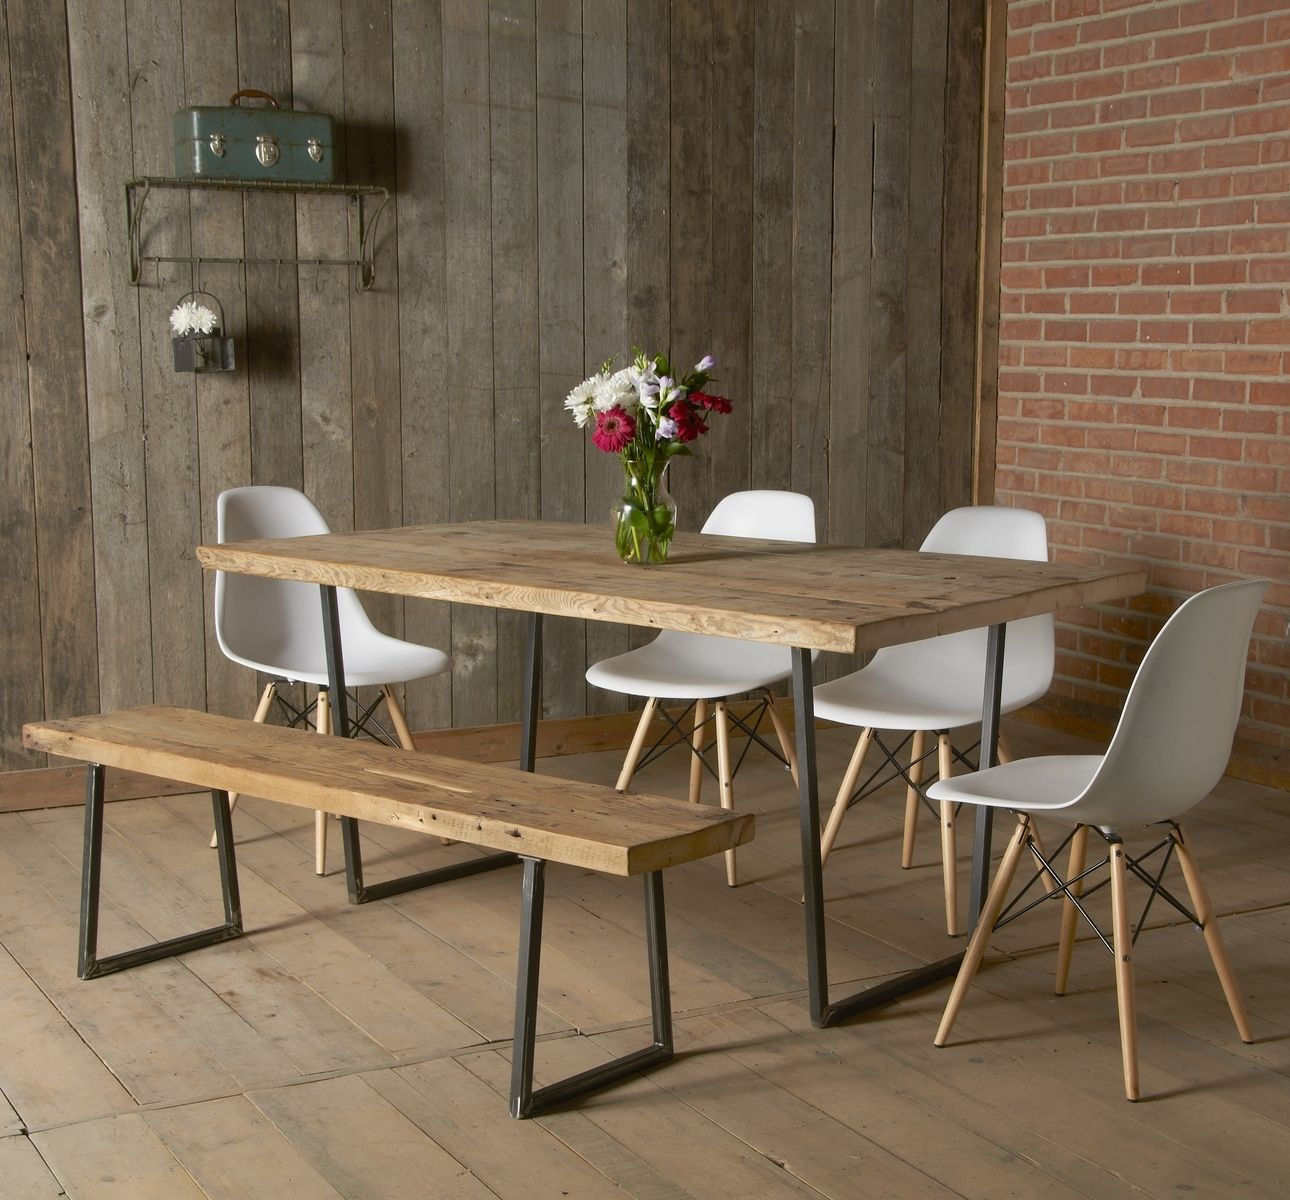 Adorable Vintage Wooden Dining Table Idea With White Chairs And Bench Brick Wall